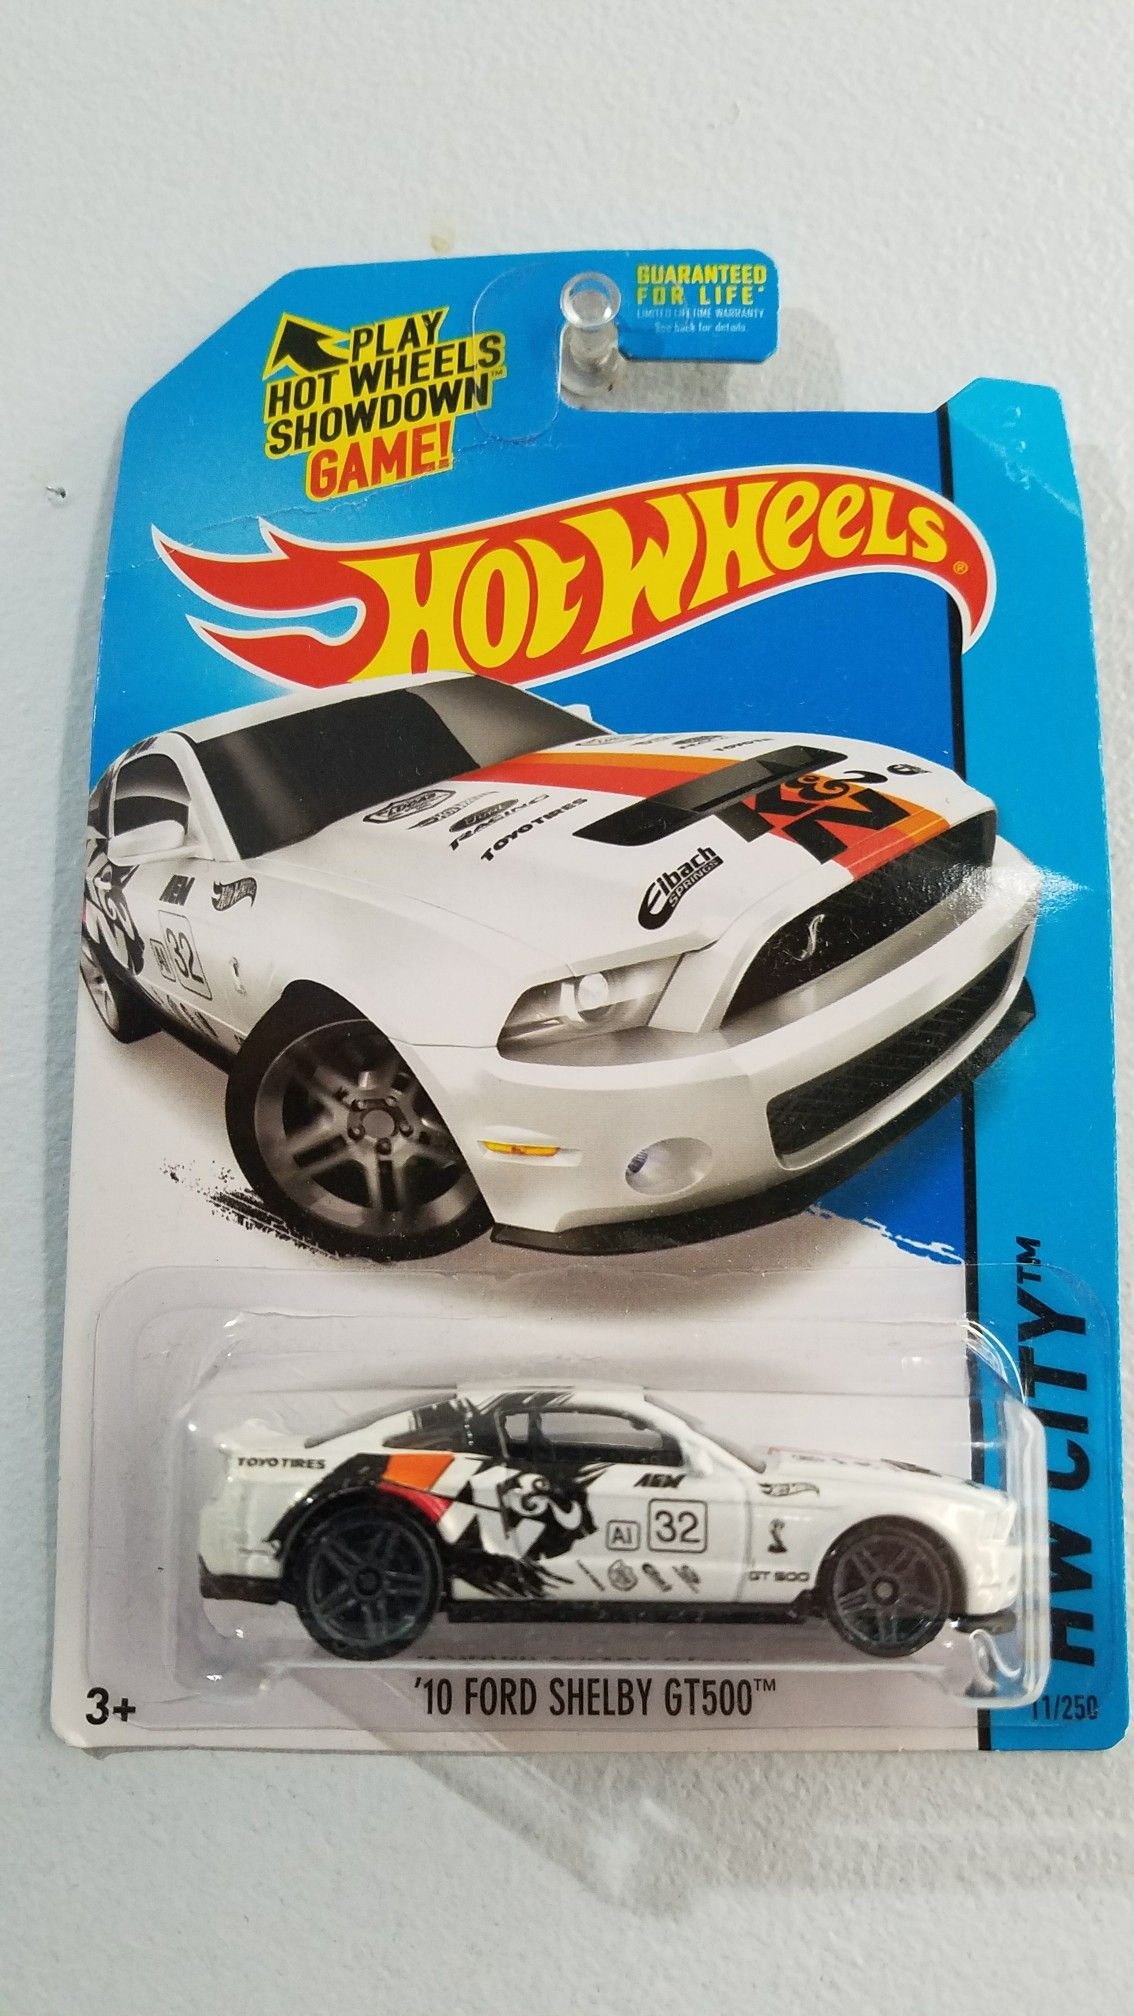 Hot Wheels 2010 Ford Shelby Gt500 Brought To You By Smart E Hot Wheels Ford Shelby Shelby Gt500